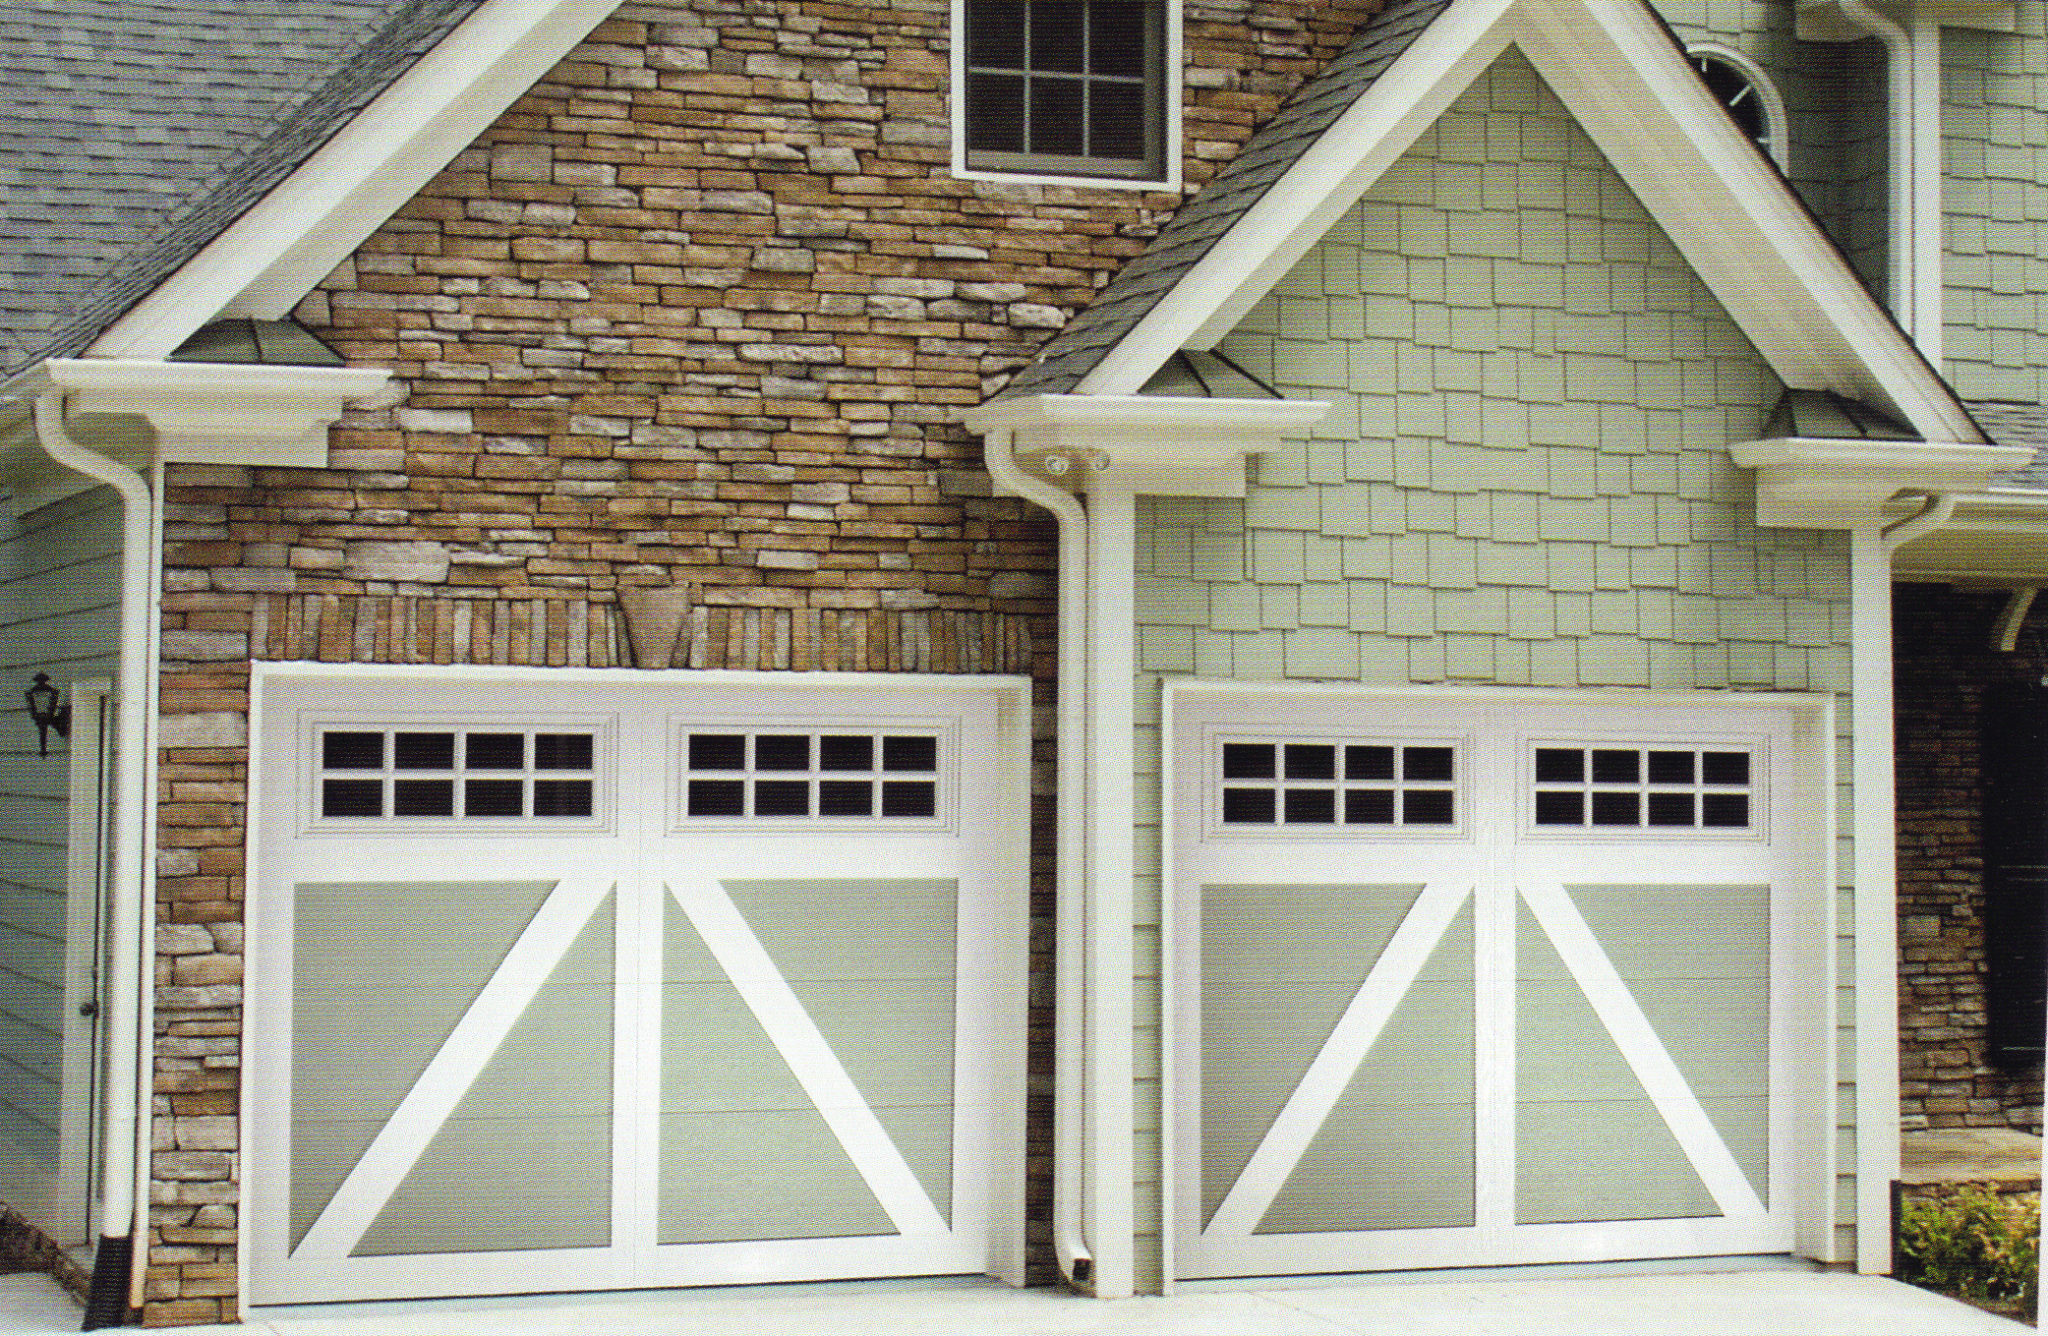 Carriage creek style 5 painted garage door a plus garage for Painted garage doors pictures